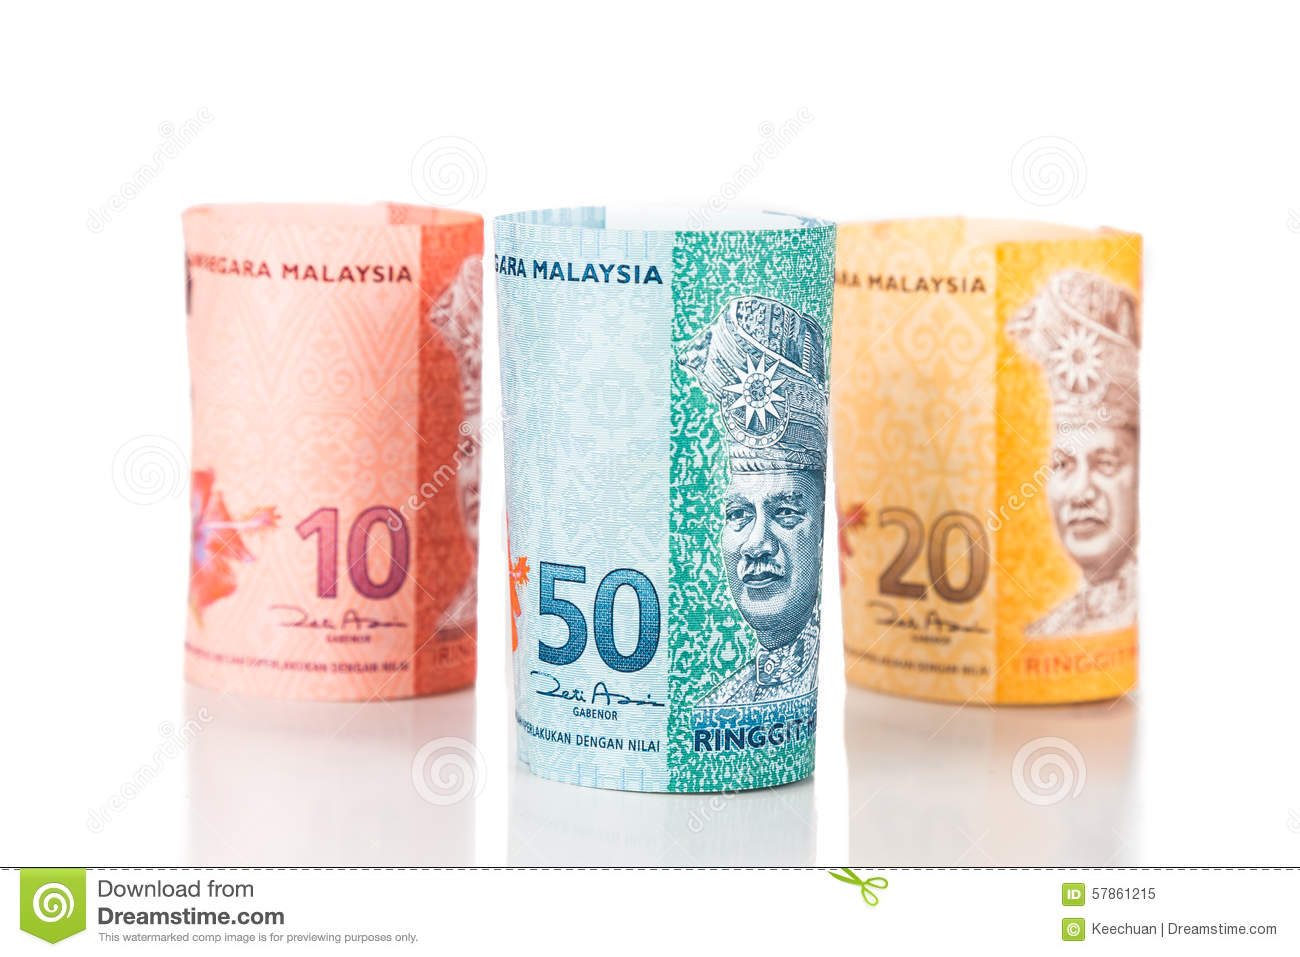 Ringgit currency malaysia stock photos royalty free pictures close up of rolled up malaysia ringgit currency note royalty free stock photo buycottarizona Image collections